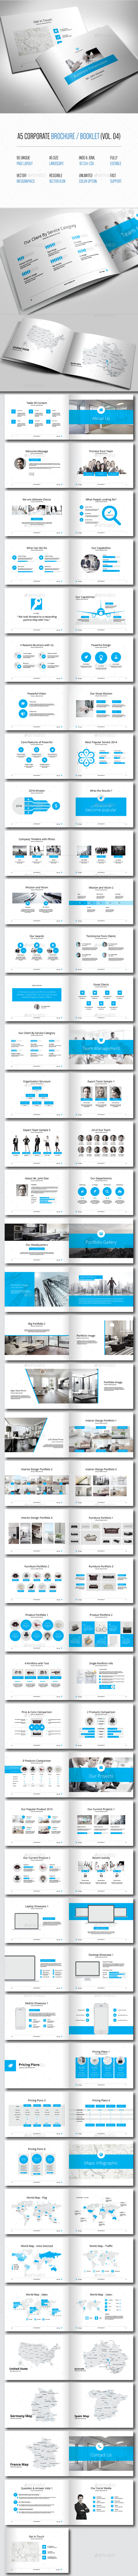 A5 Corporate Landscape Brochure Booklet (V.04) - Corporate Brochures